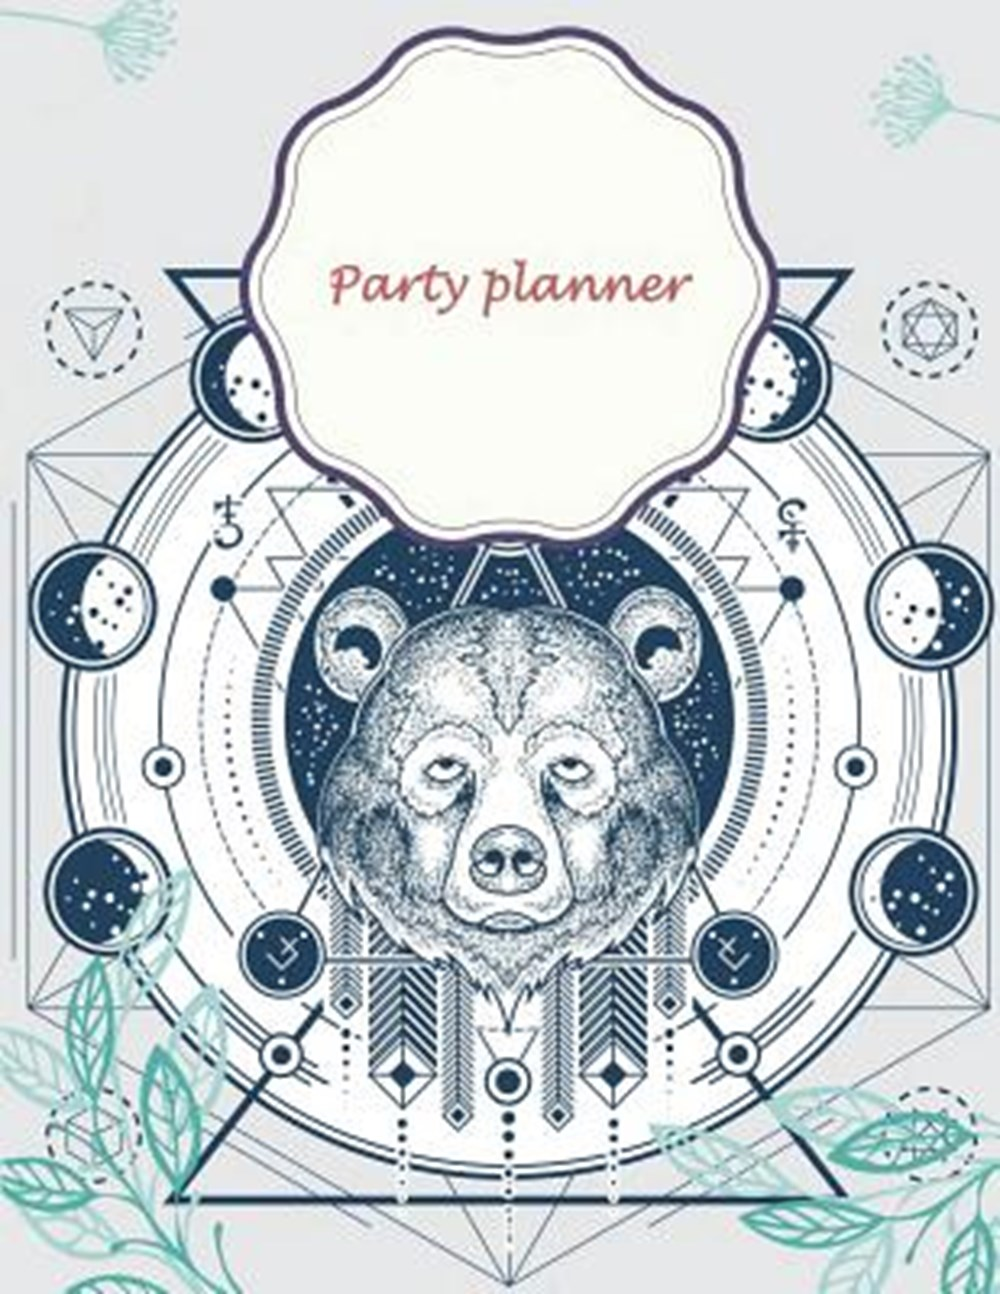 "Party planner Happy White Bear, Happy plan, event planner 120 pages Large Print 8.5"" x 11"""